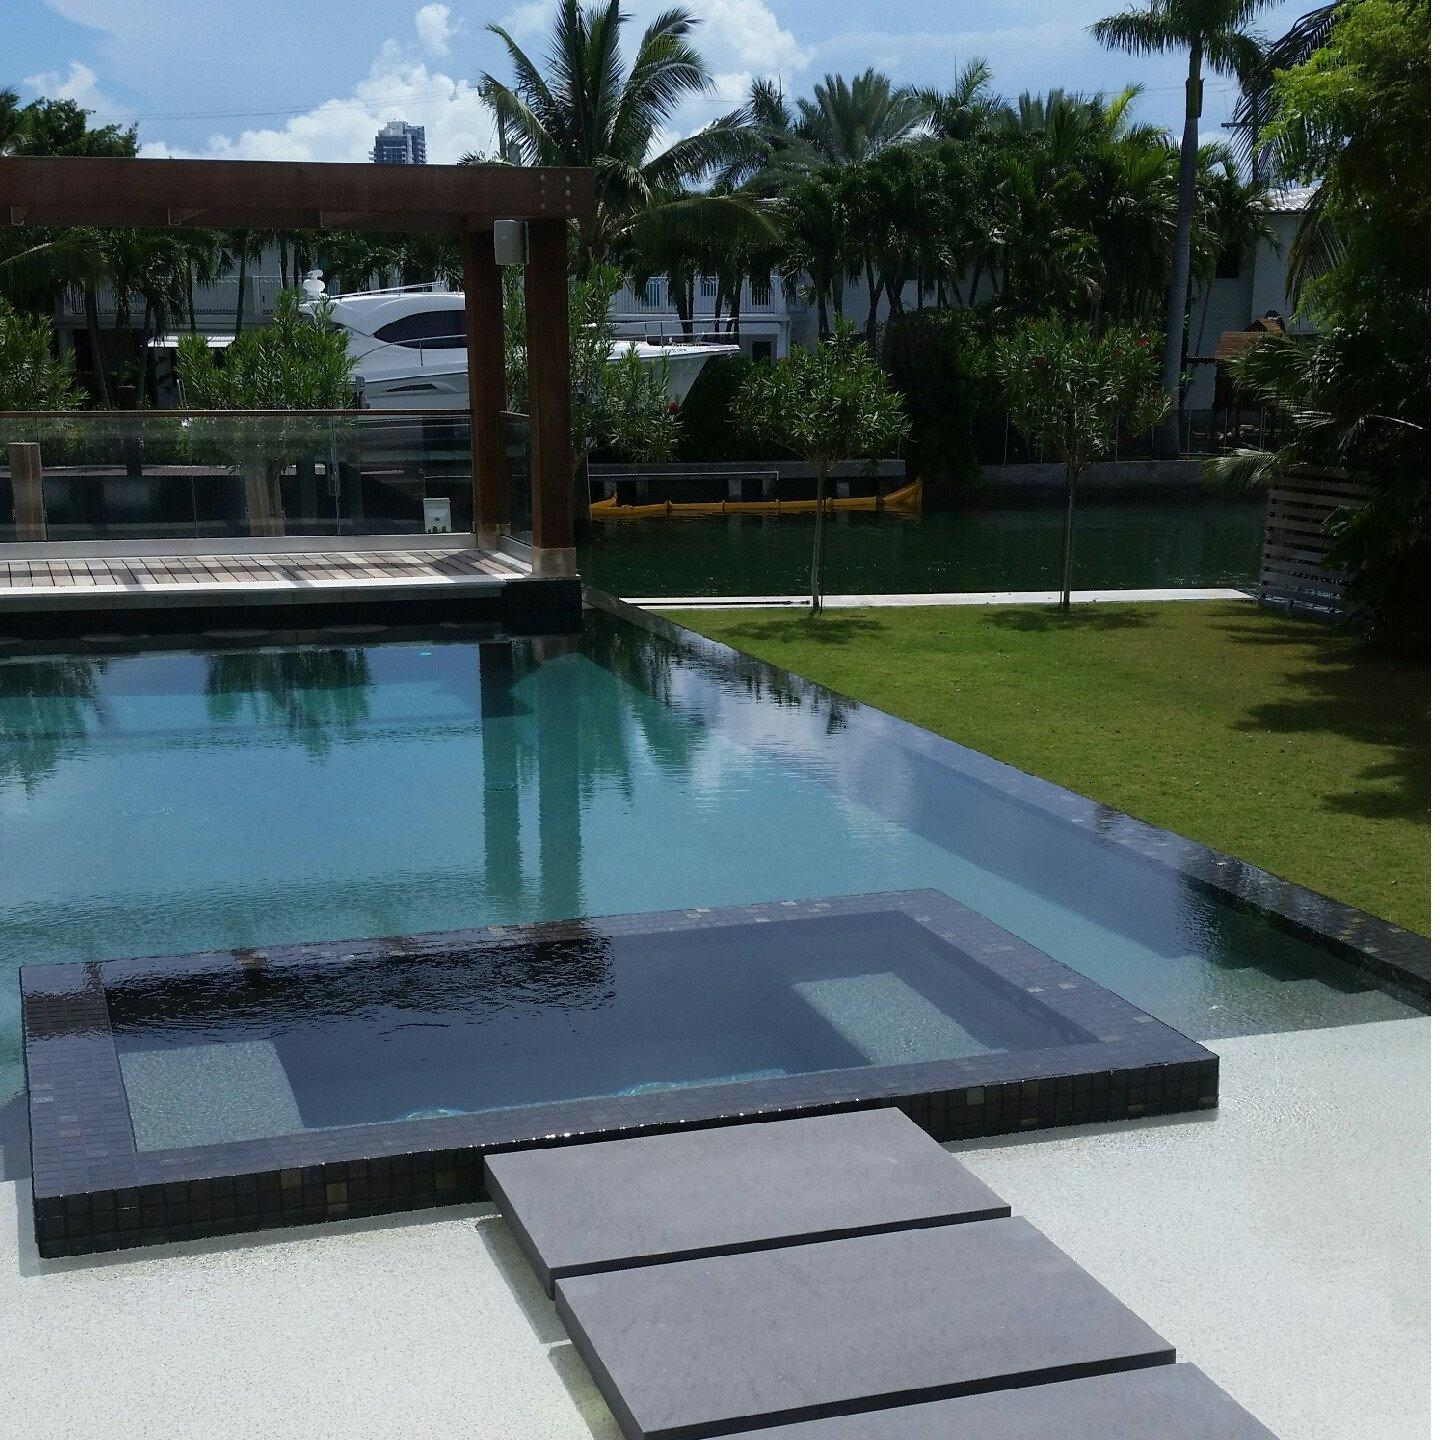 Aqua escapes inc in west palm beach fl swimming pool for Swimming pool dealers